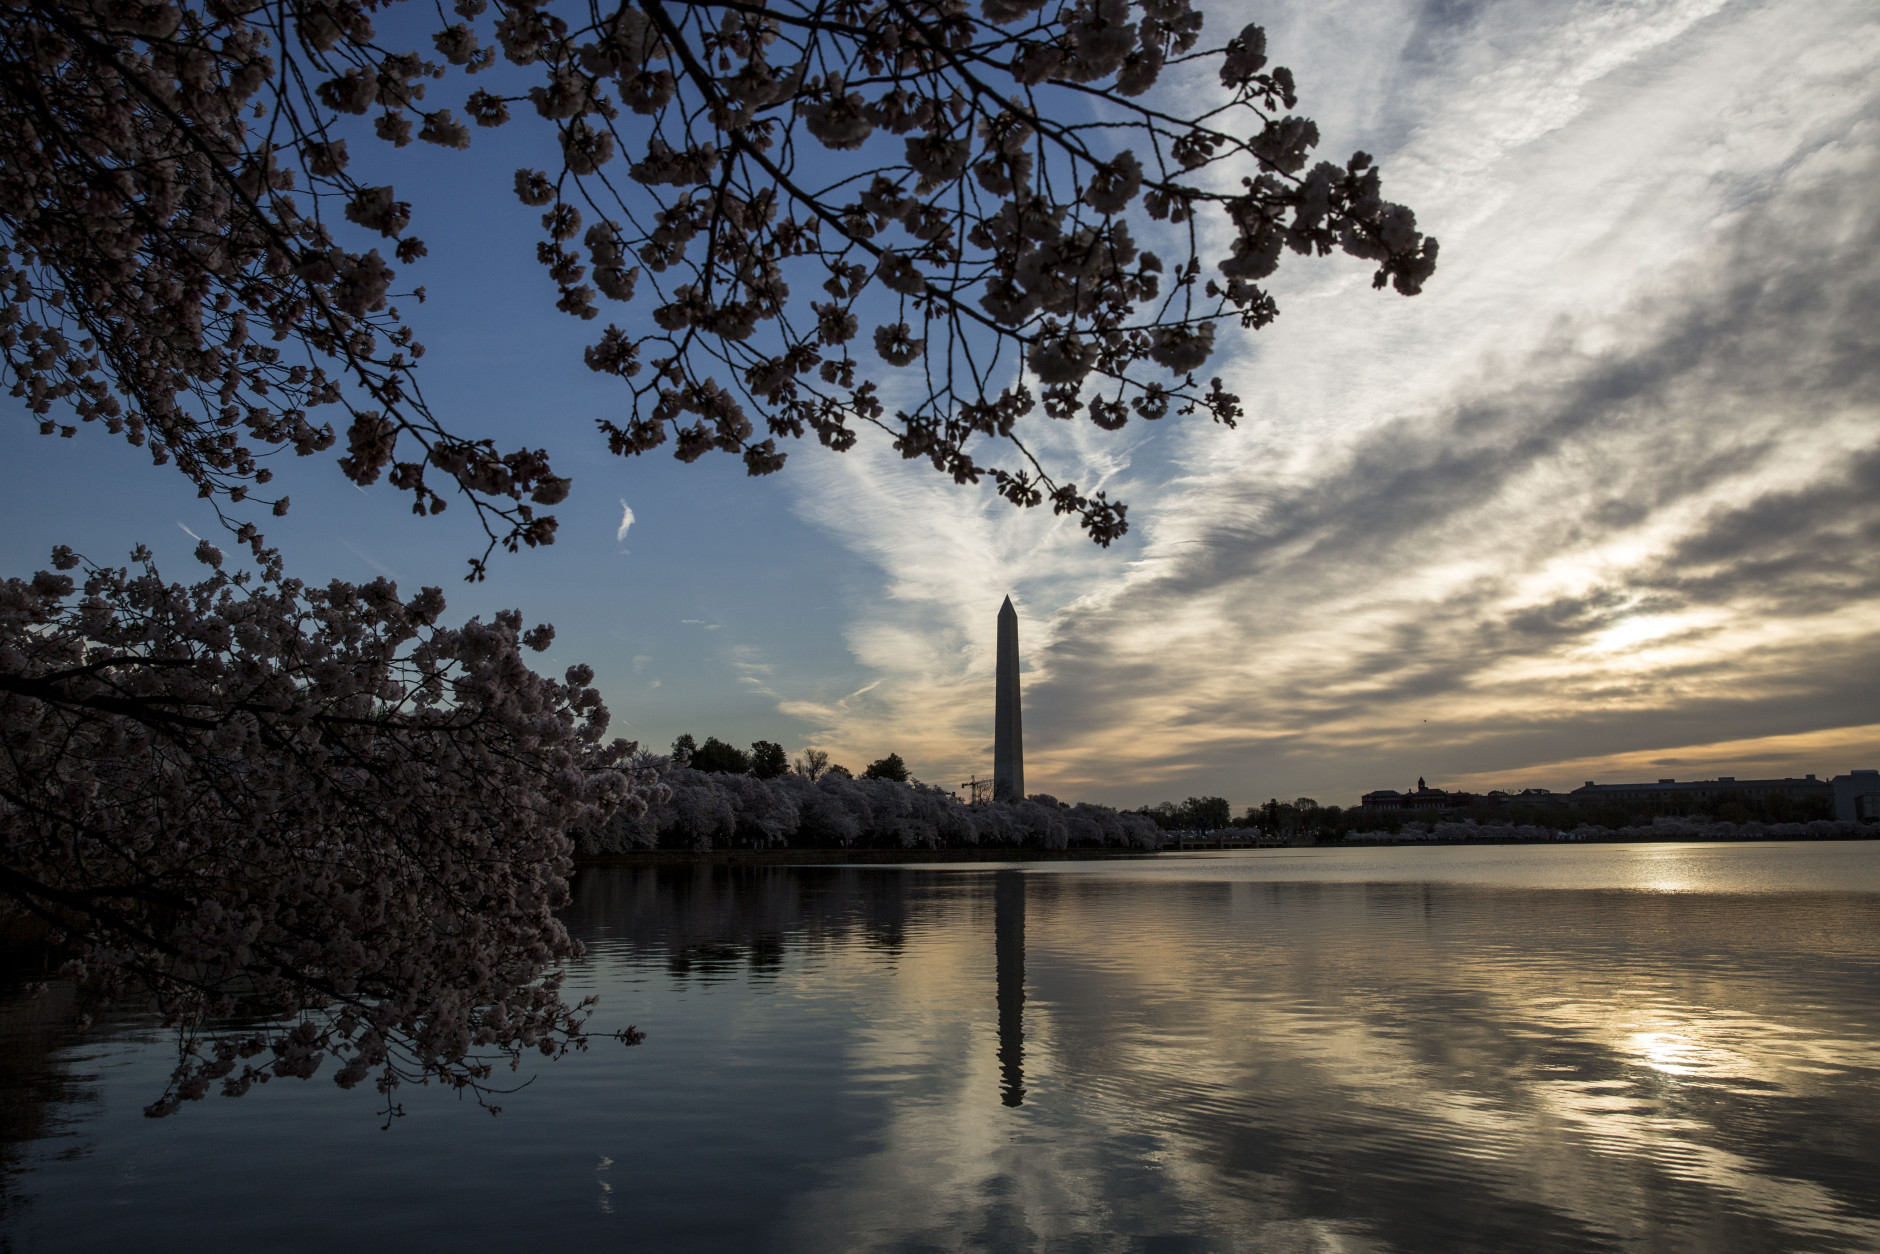 WASHINGTON, DC - APRIL 11: Cherry blossoms along the Tidal Basin, April 11, 2015 in Washington, DC.  (Drew Angerer/Getty Images)